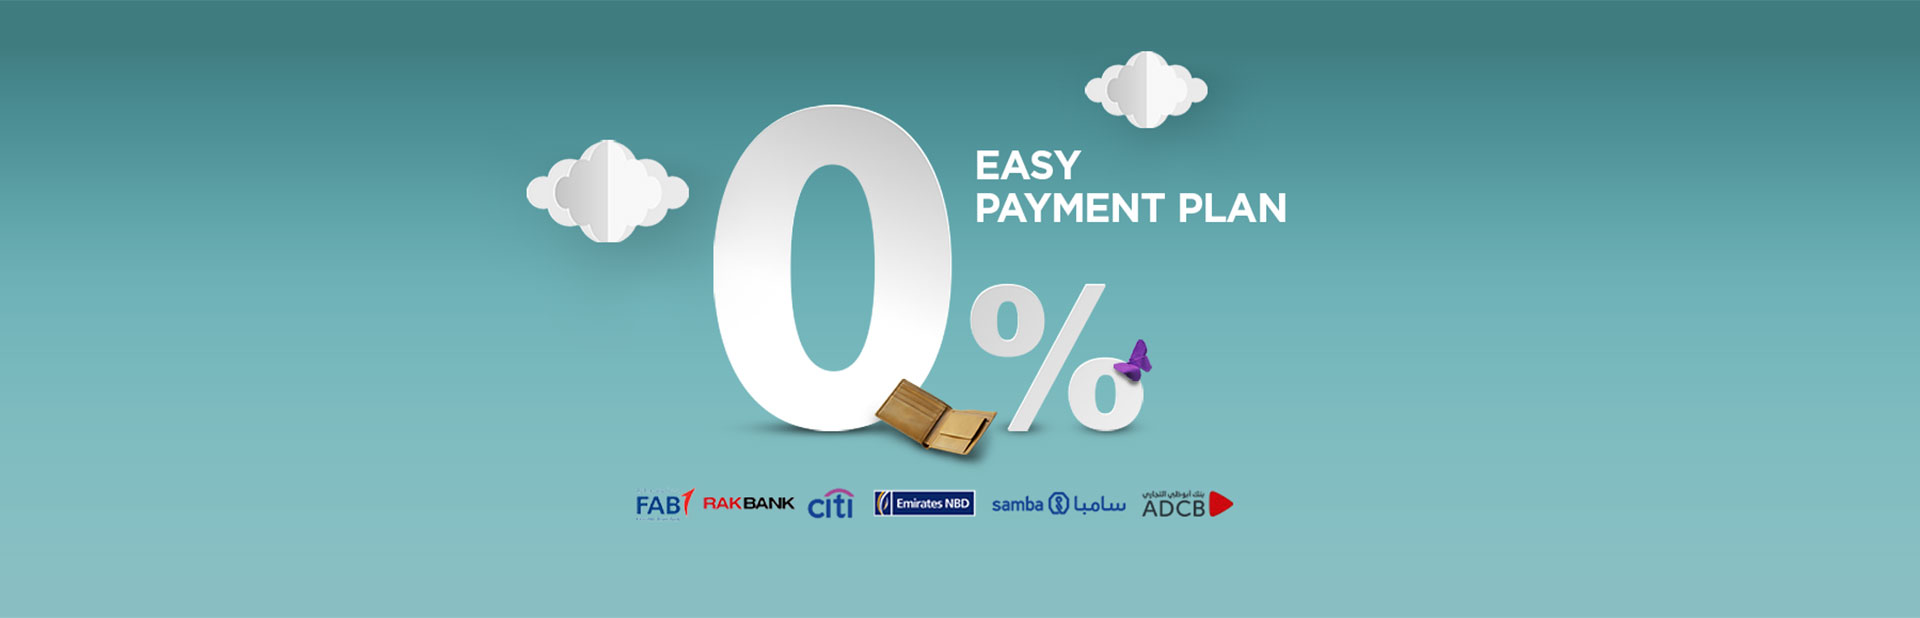 http://nuetn.icu/easy-payment-plan